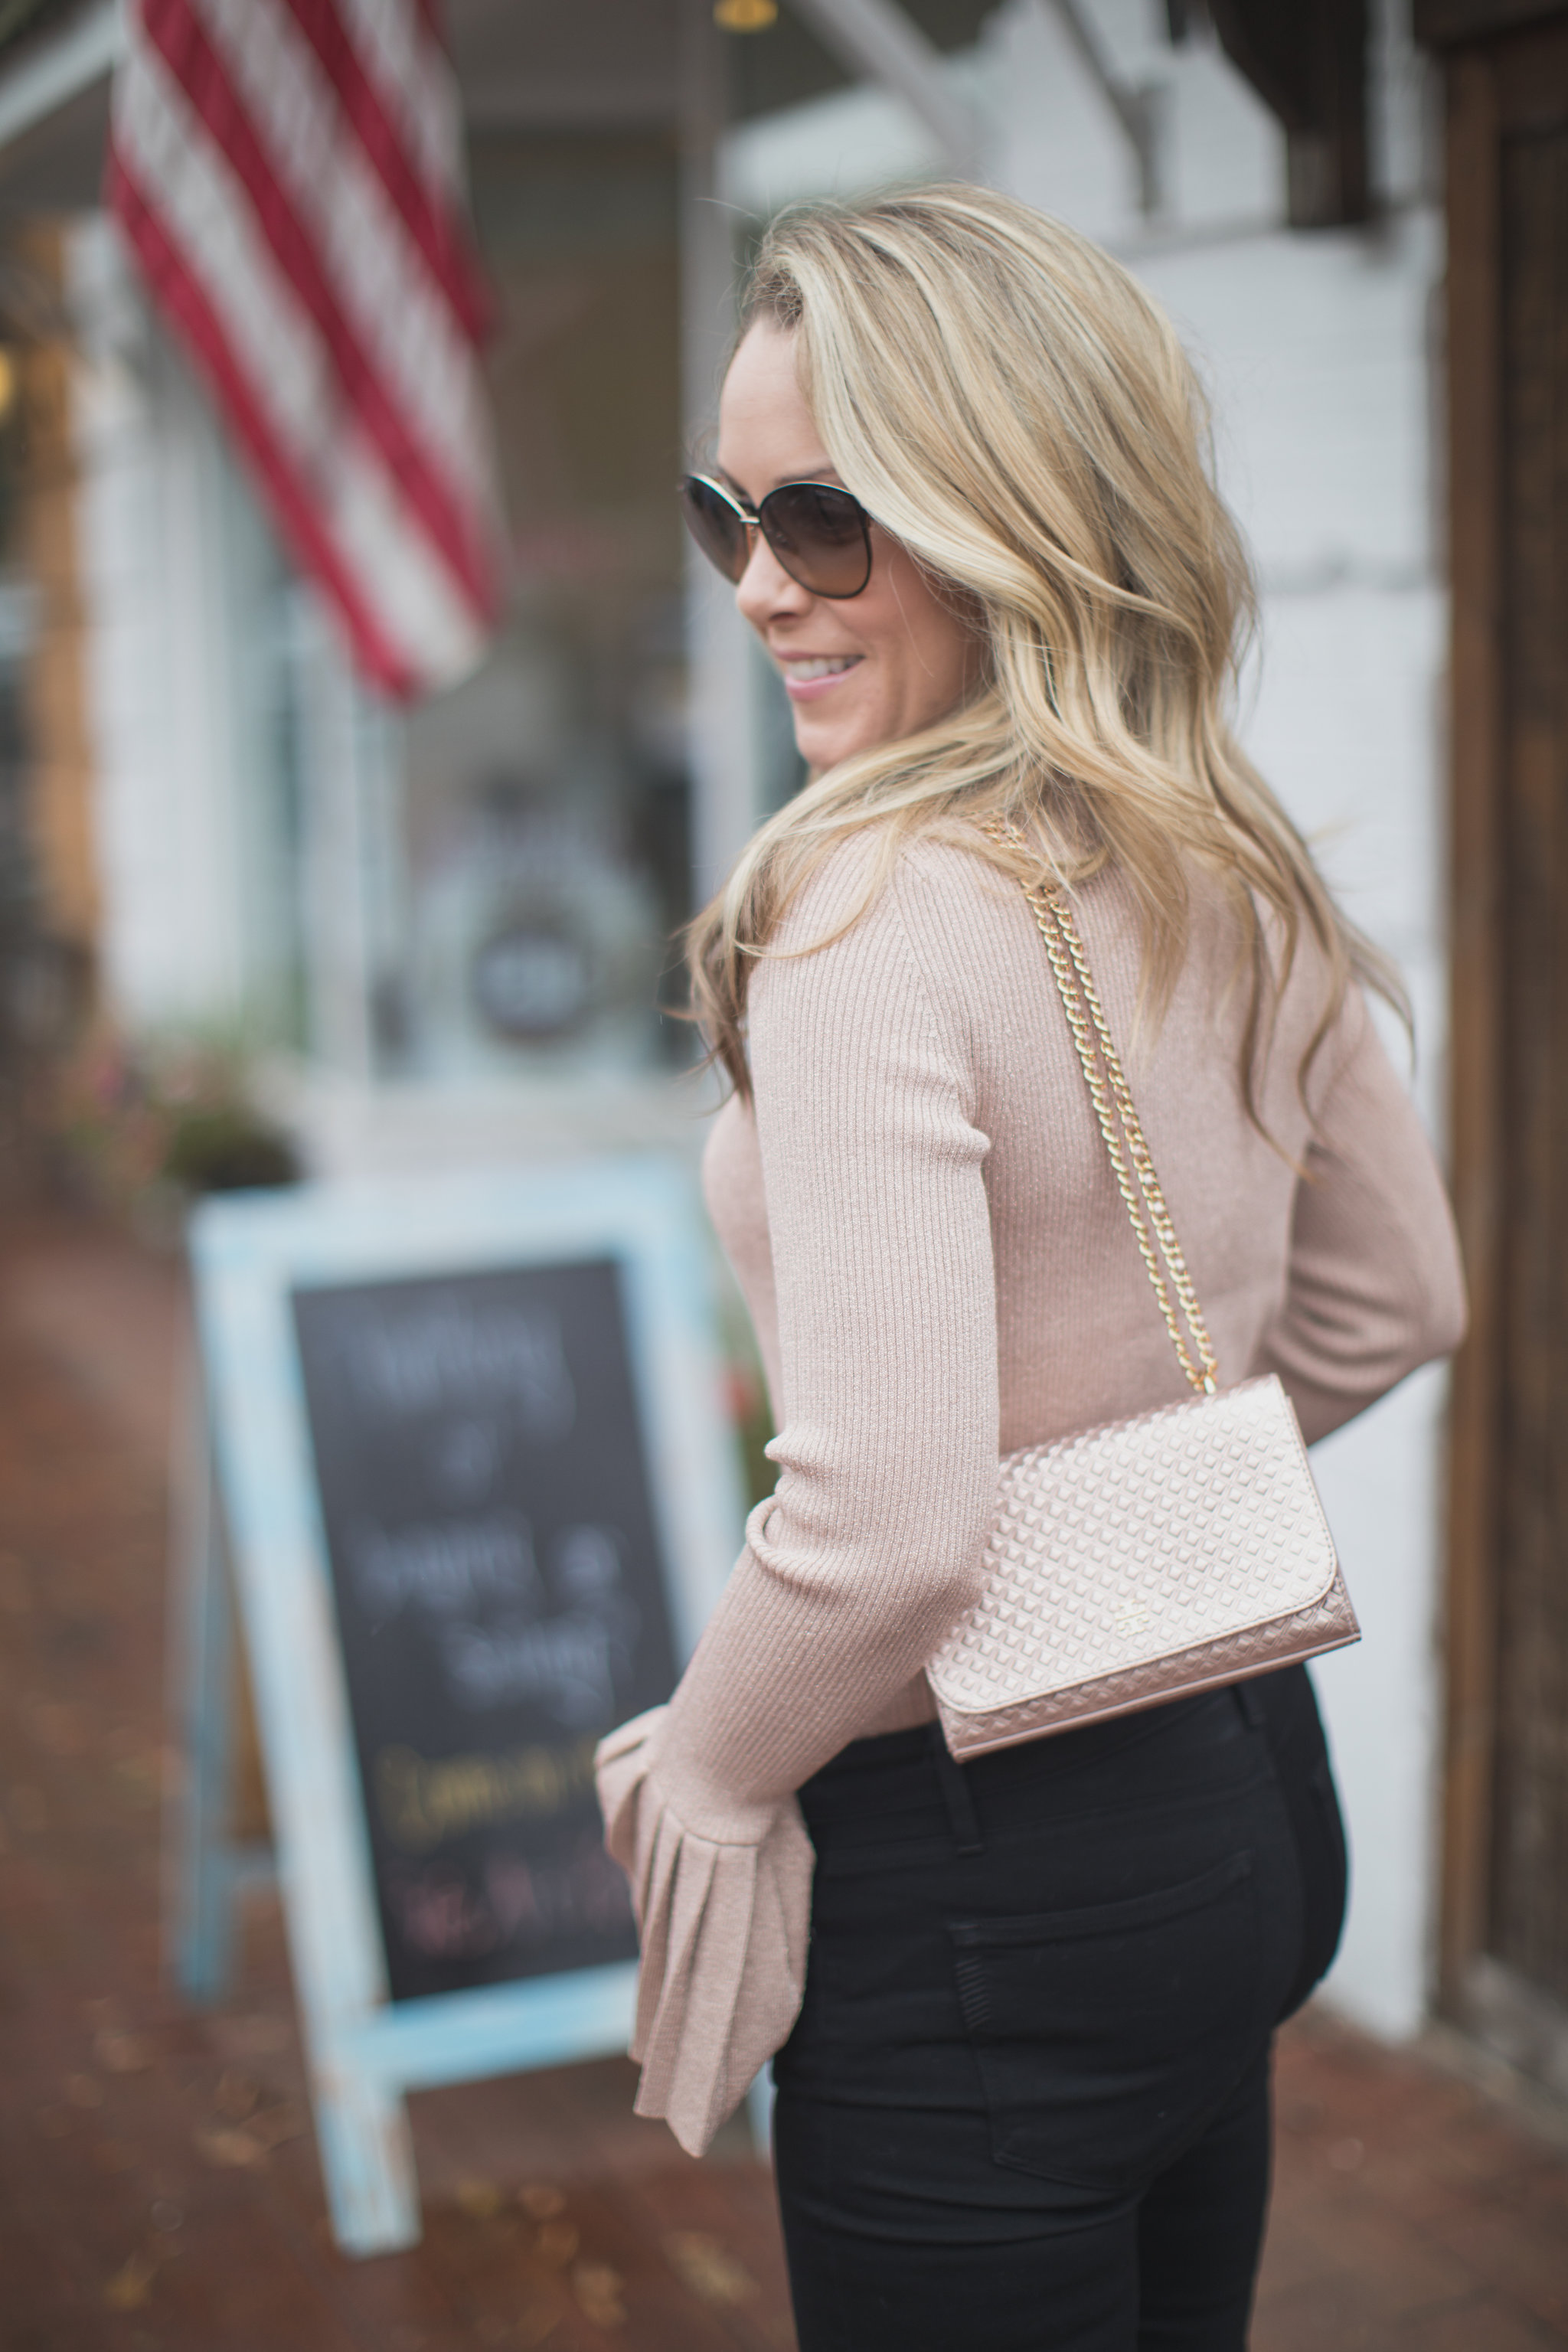 I am shopping with IFCHIC on ECW today! - Shopping with IFCHIC by North Carolina fashion blogger Every Chic Way